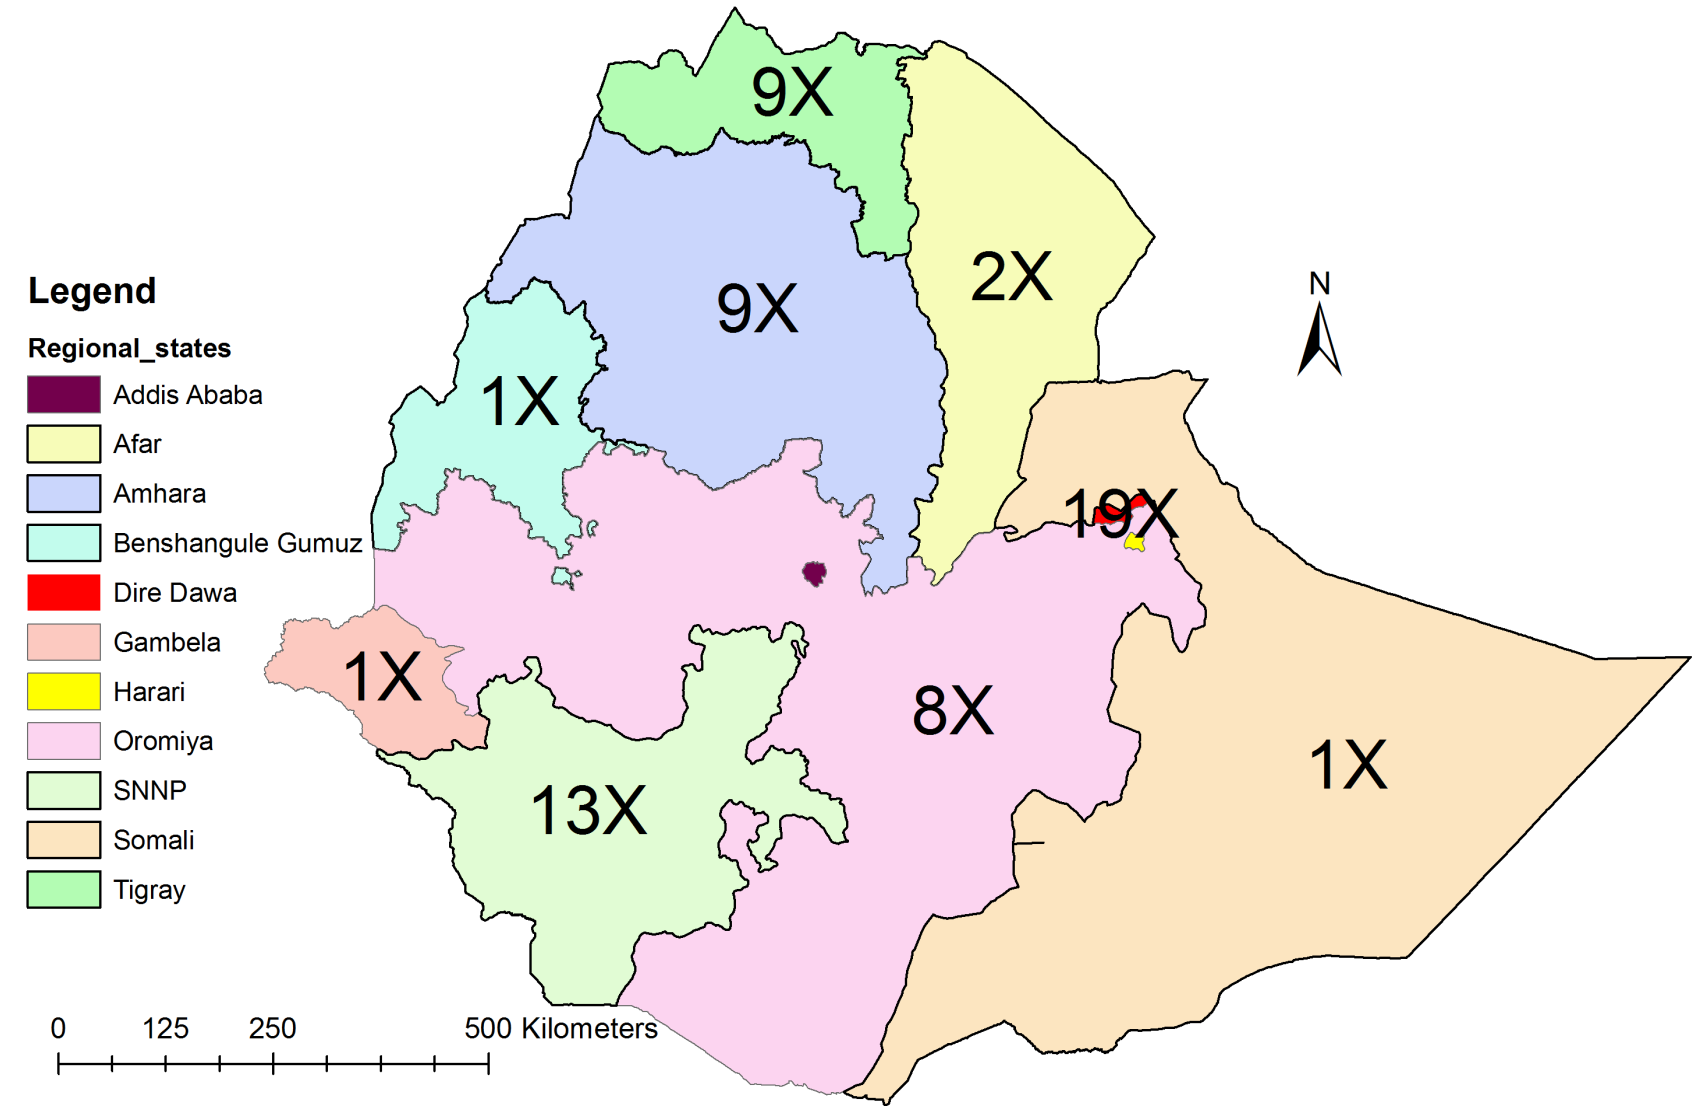 APPENDICES Figure 10-2 National regional states and city administrations maps of Ethiopia and their relative population density (per km 2 ) Addis Ababa and Dire Dawa are city administrations while